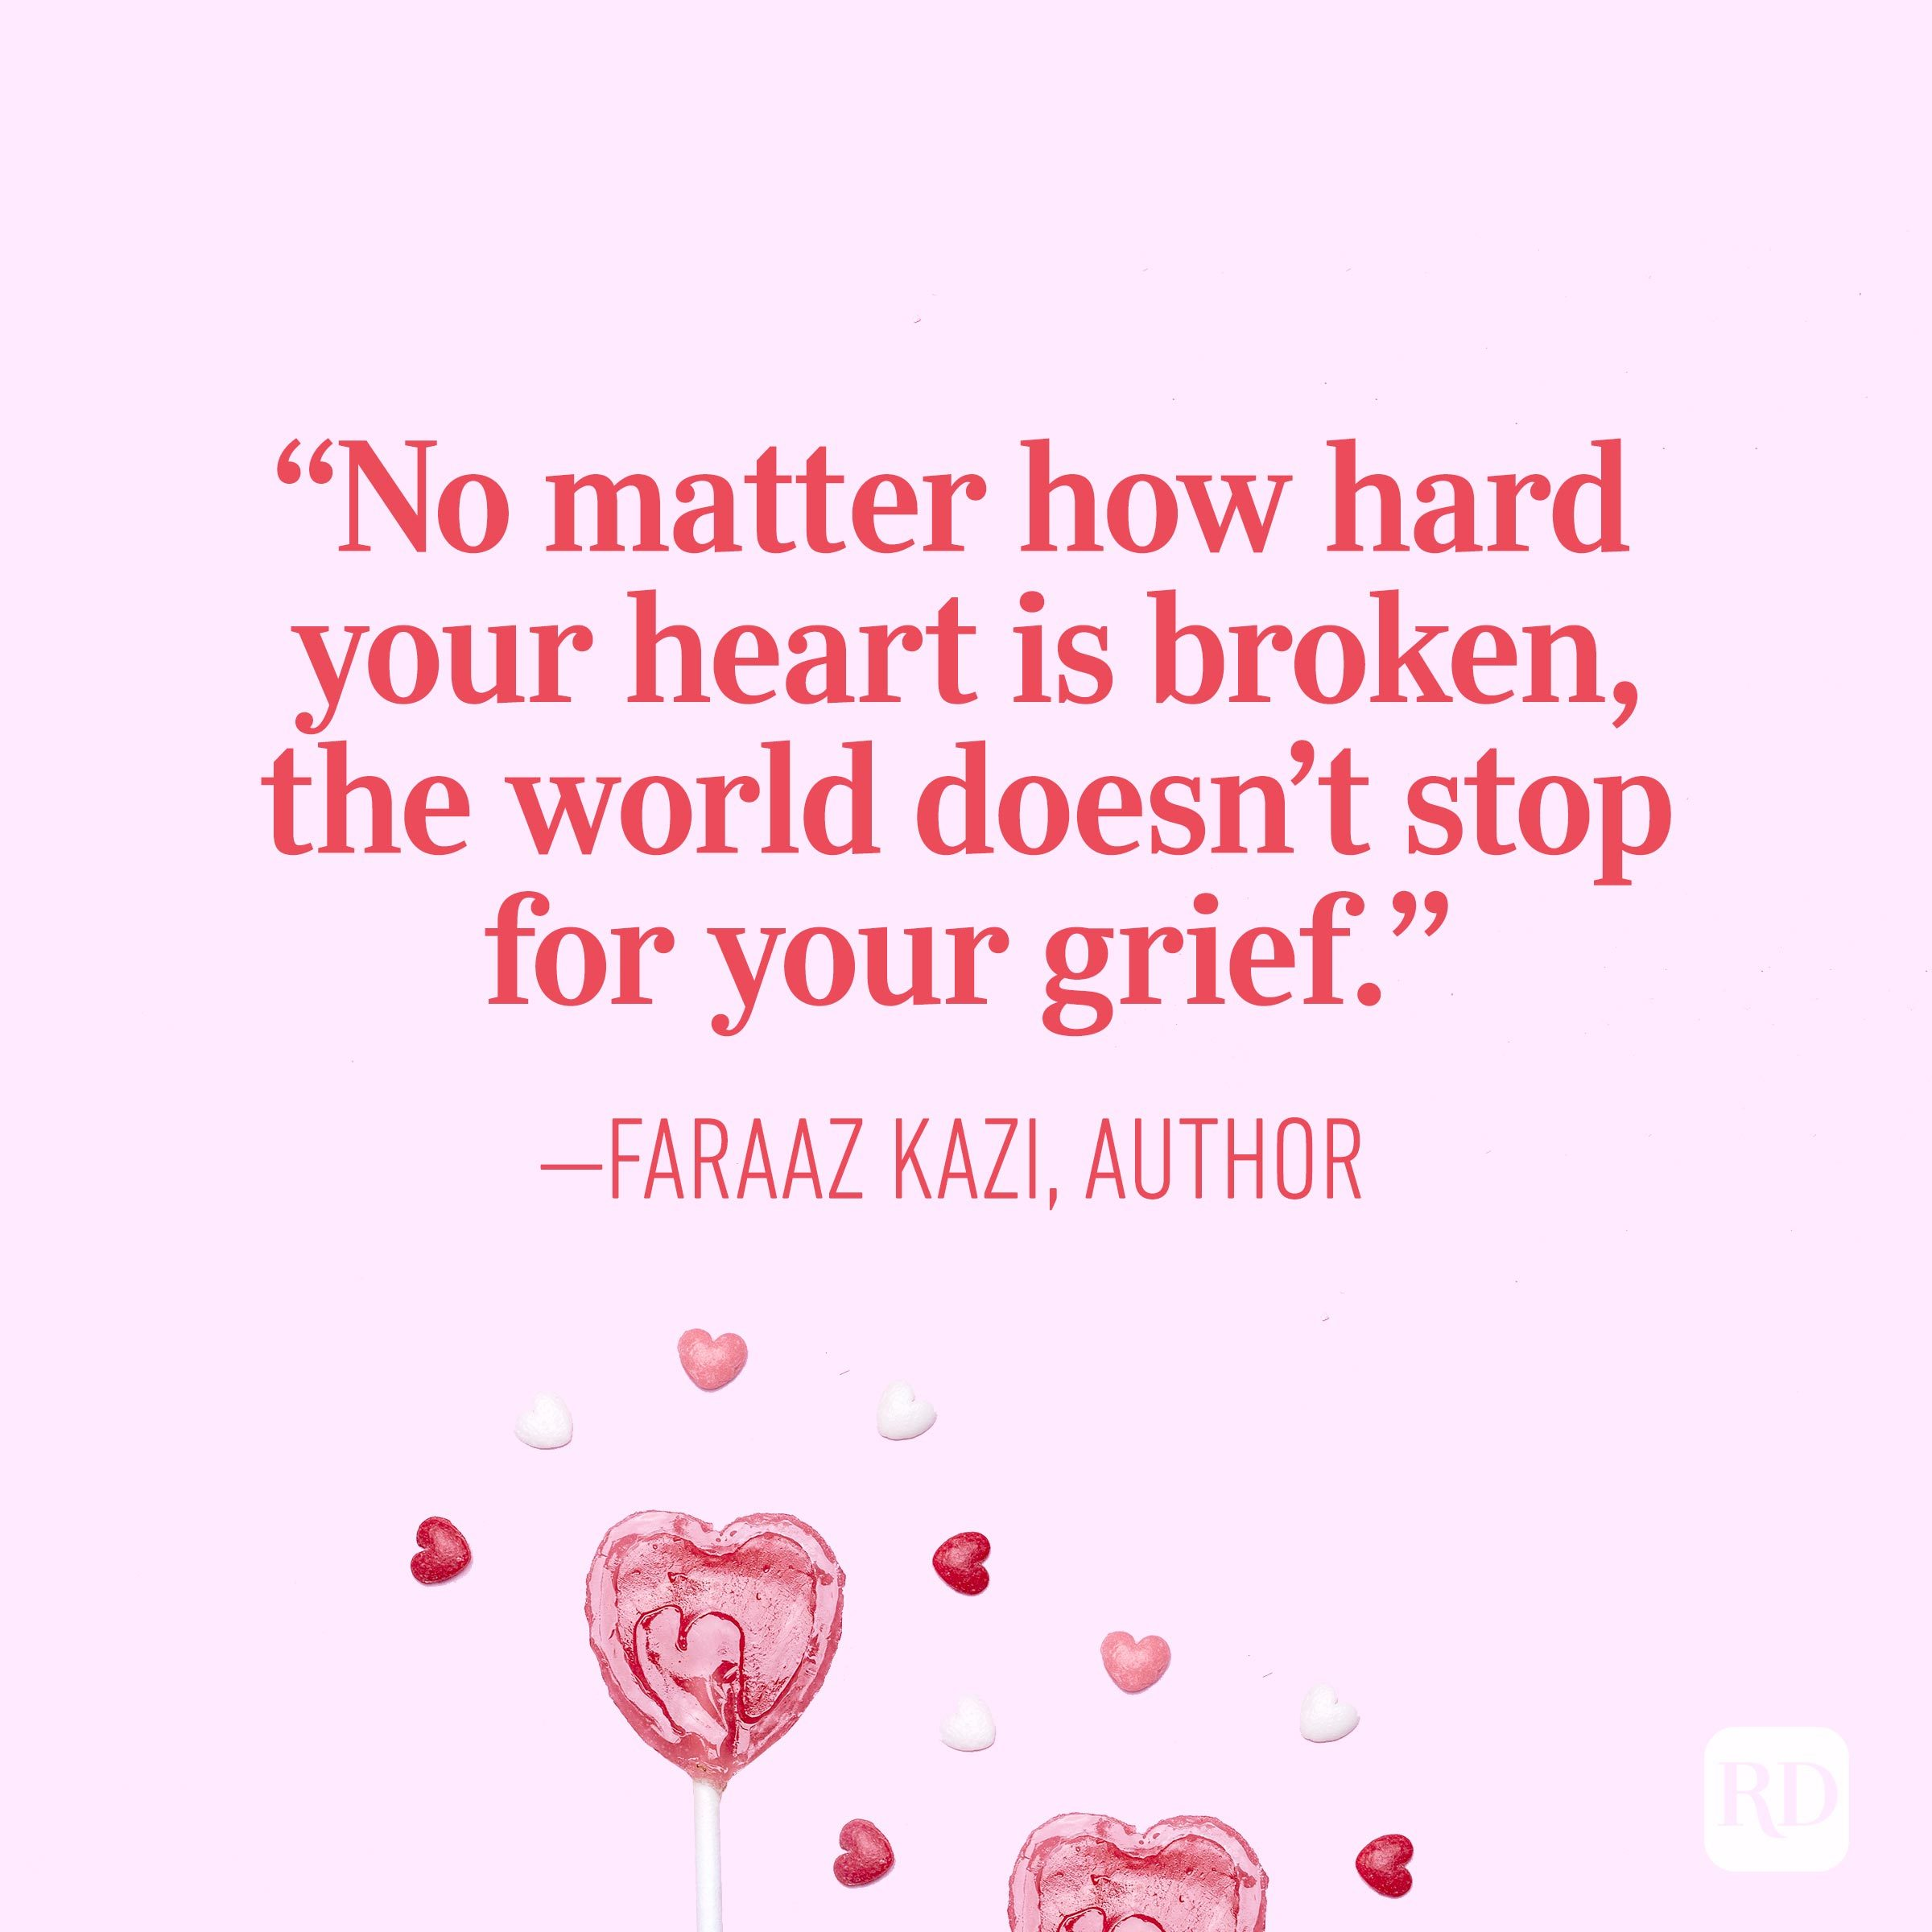 """No matter how hard your heart is broken, the world doesn't stop for your grief."" — Faraaz Kazi"